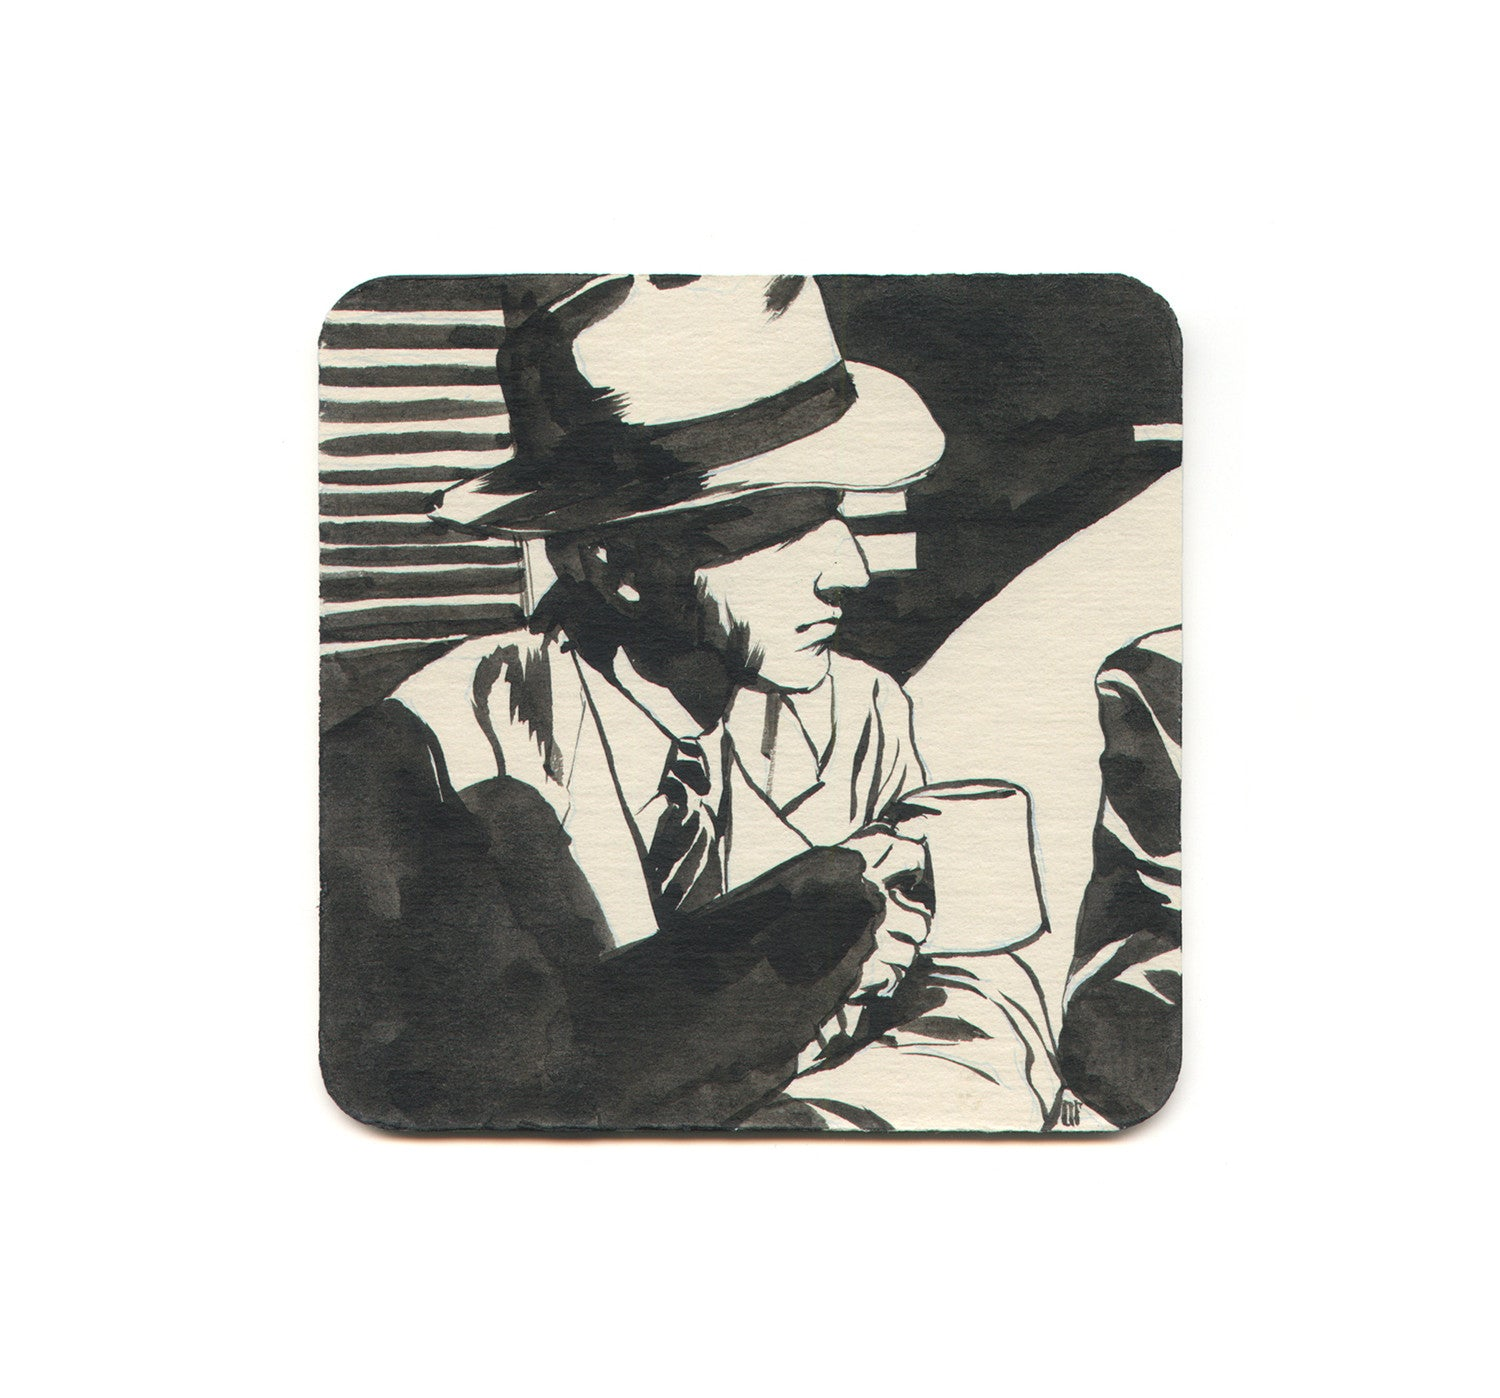 Owen Freeman - Redeye Coaster